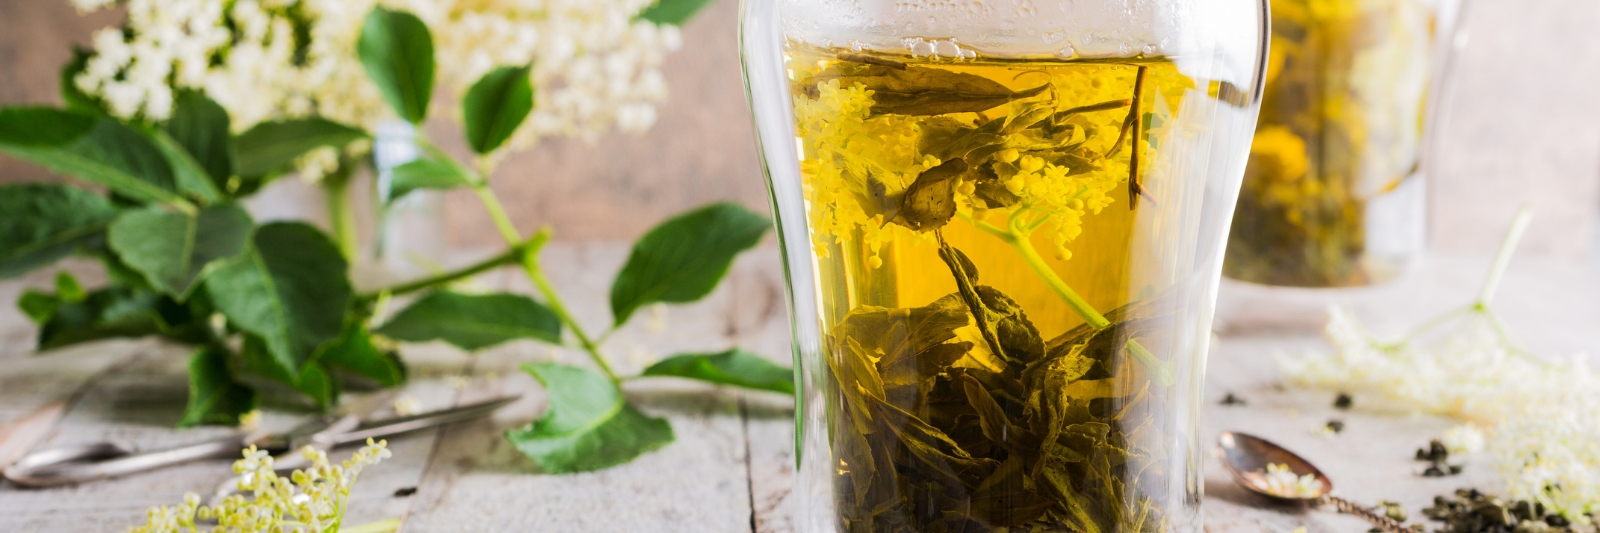 The Stimulating Effects Of Black Tea And Green Tea